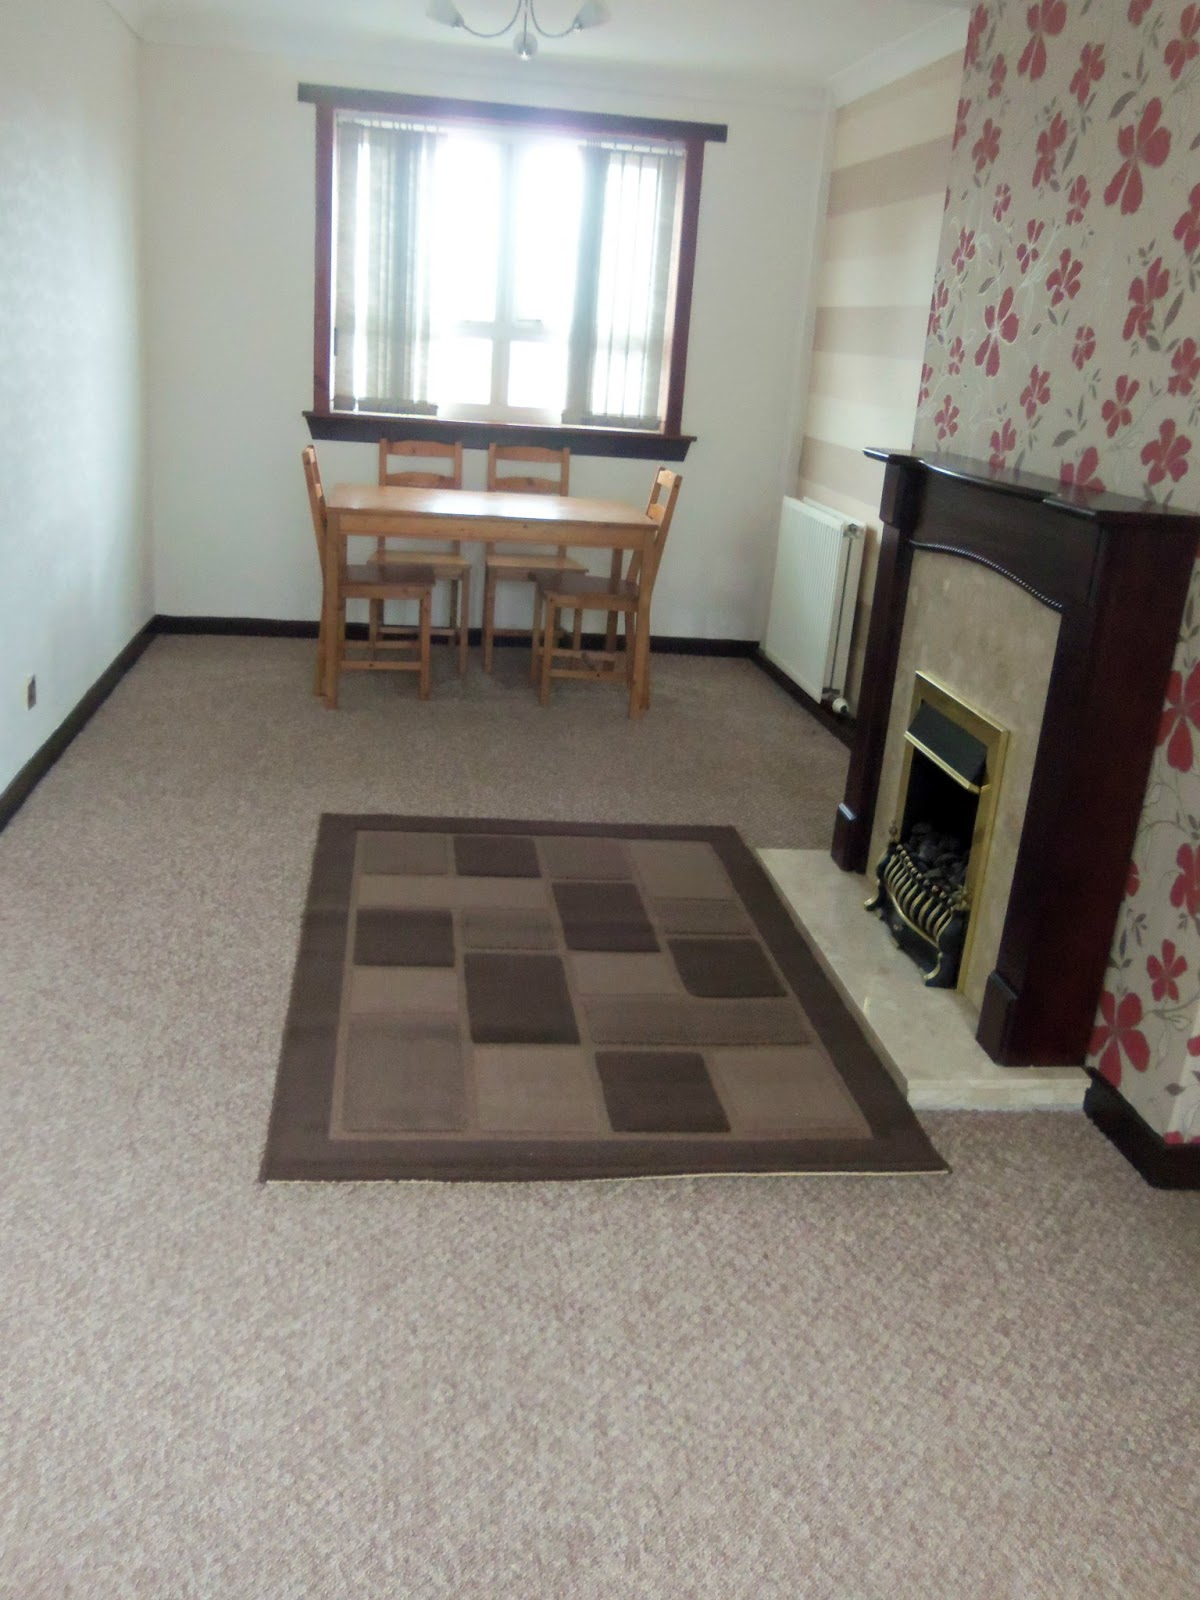 Living Room Carpet Decorating Ideas: Fun As A Gran: The Living Room Has Been Transformed